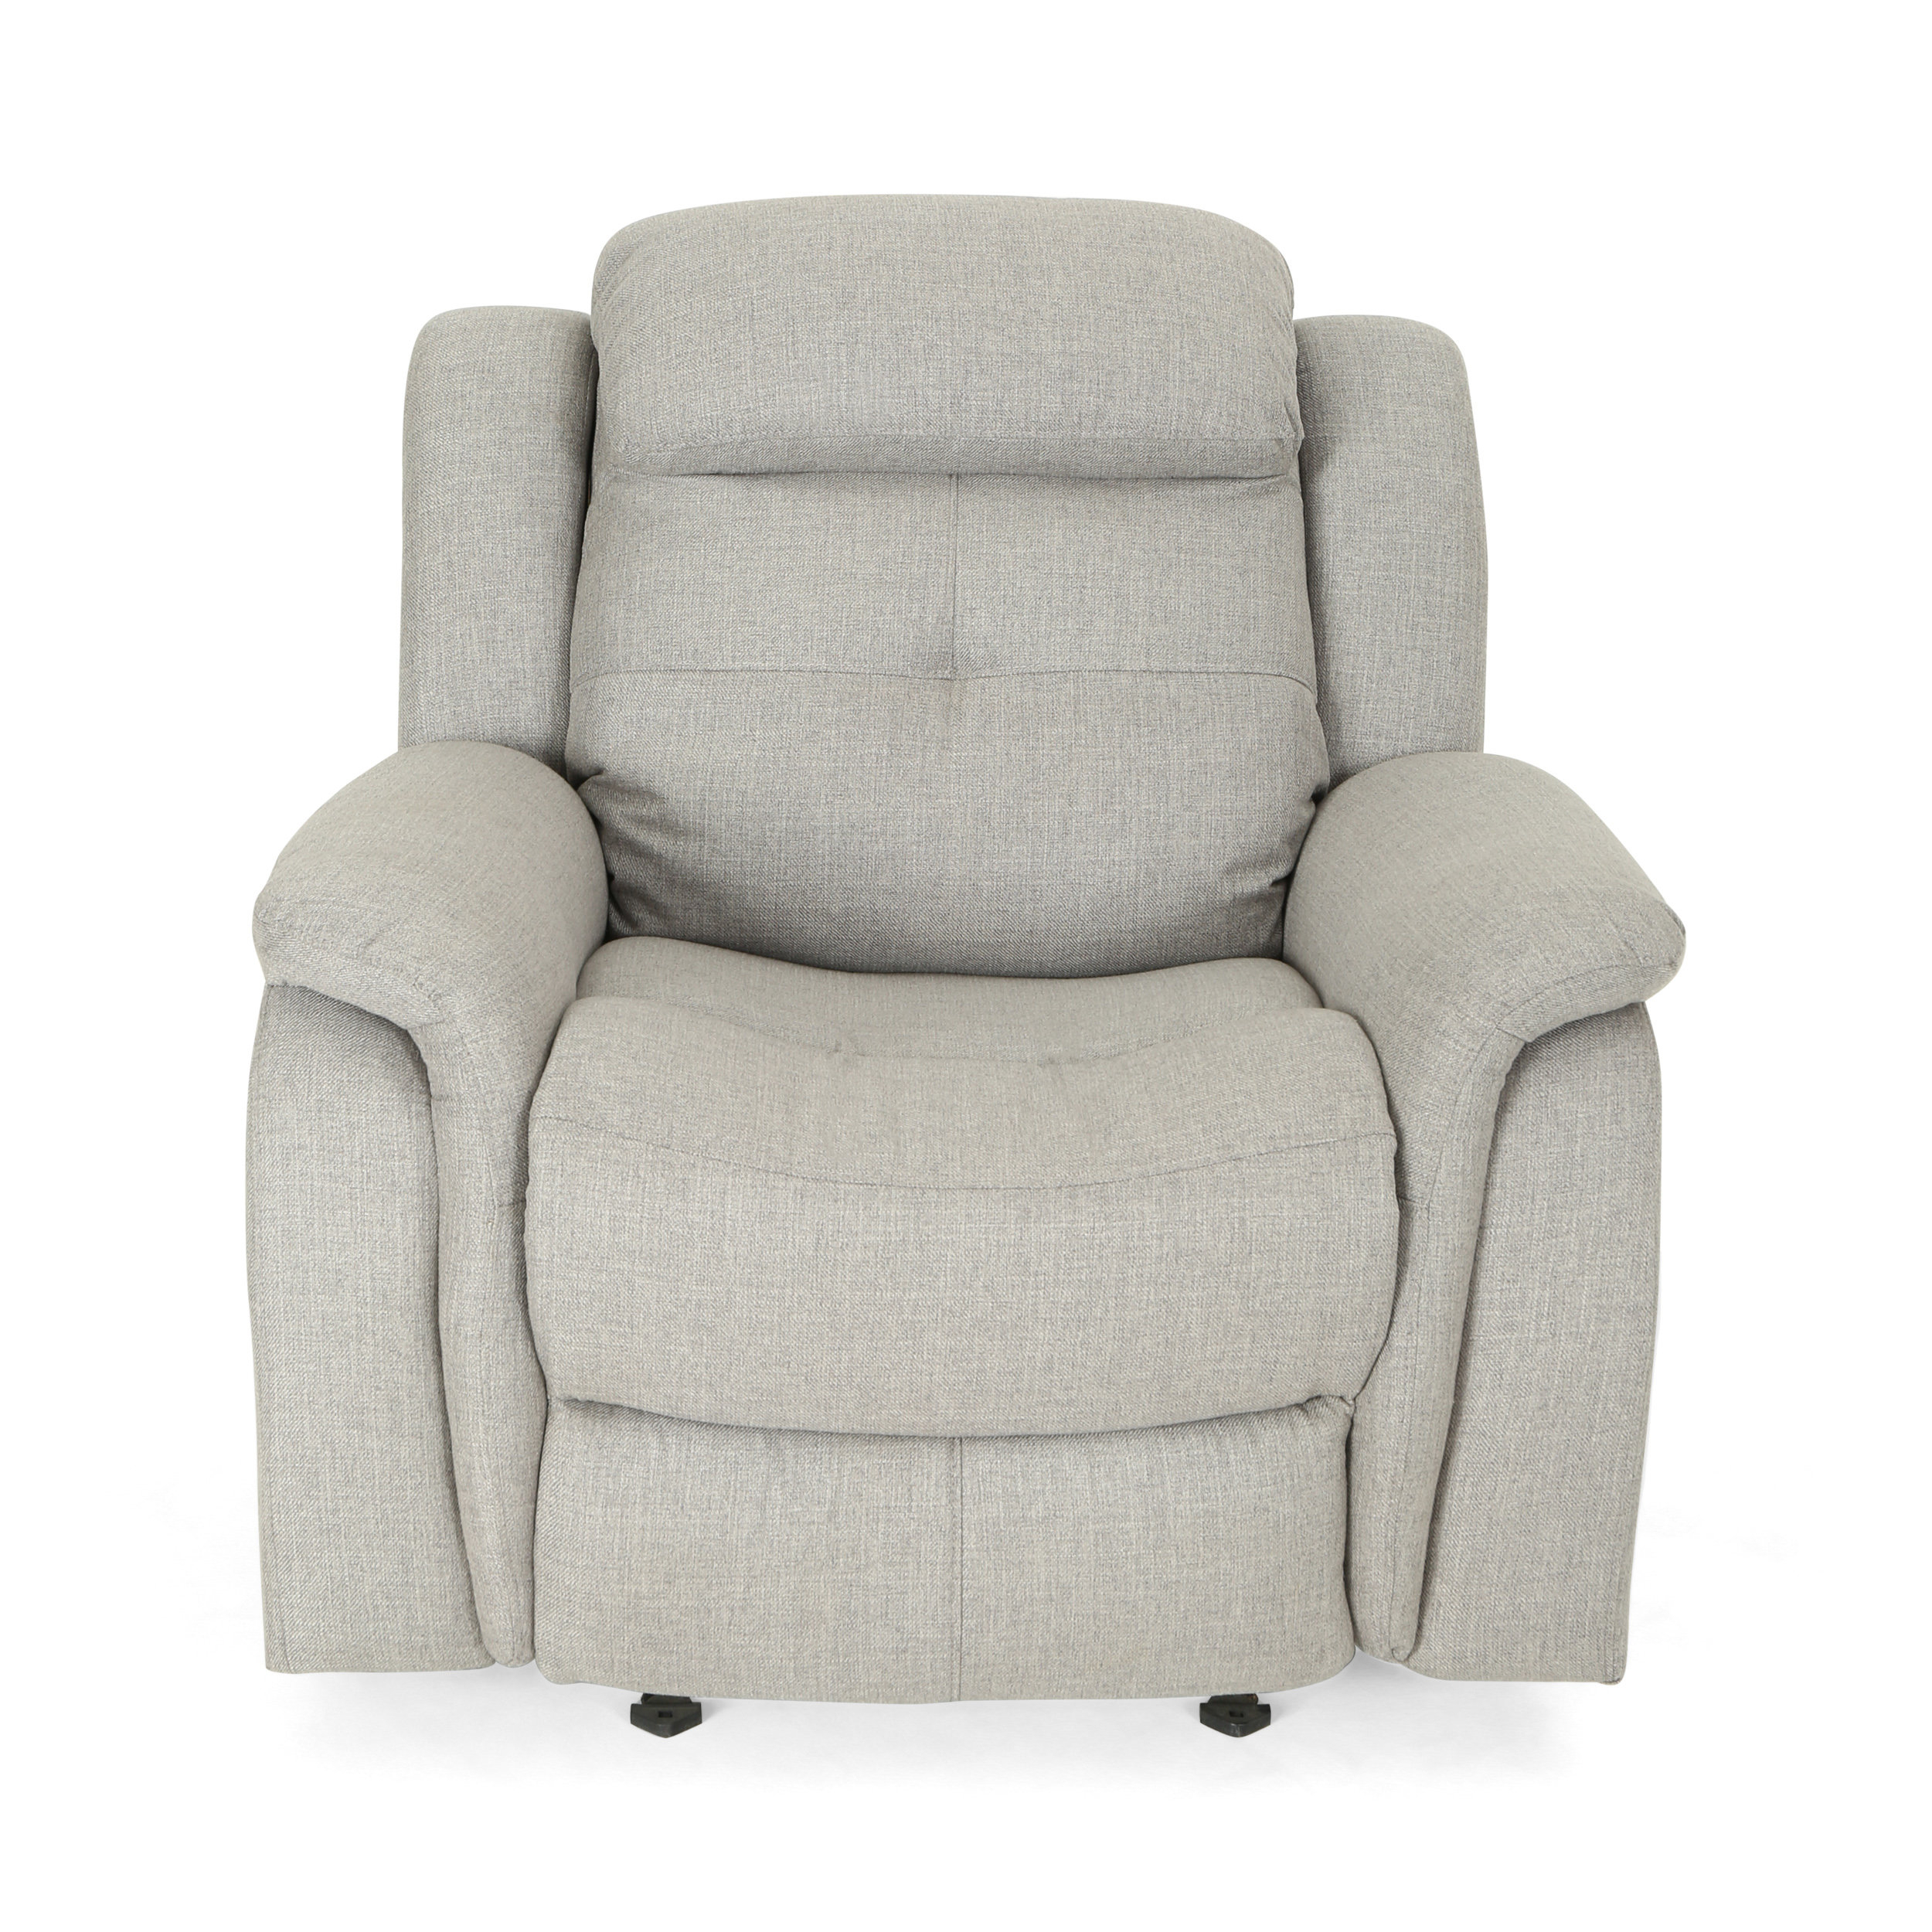 Latitude Run Anndale Traditional Manual Rocking Glider Recliner Throughout Dale Iii Polyurethane Swivel Glider Recliners (Image 14 of 25)